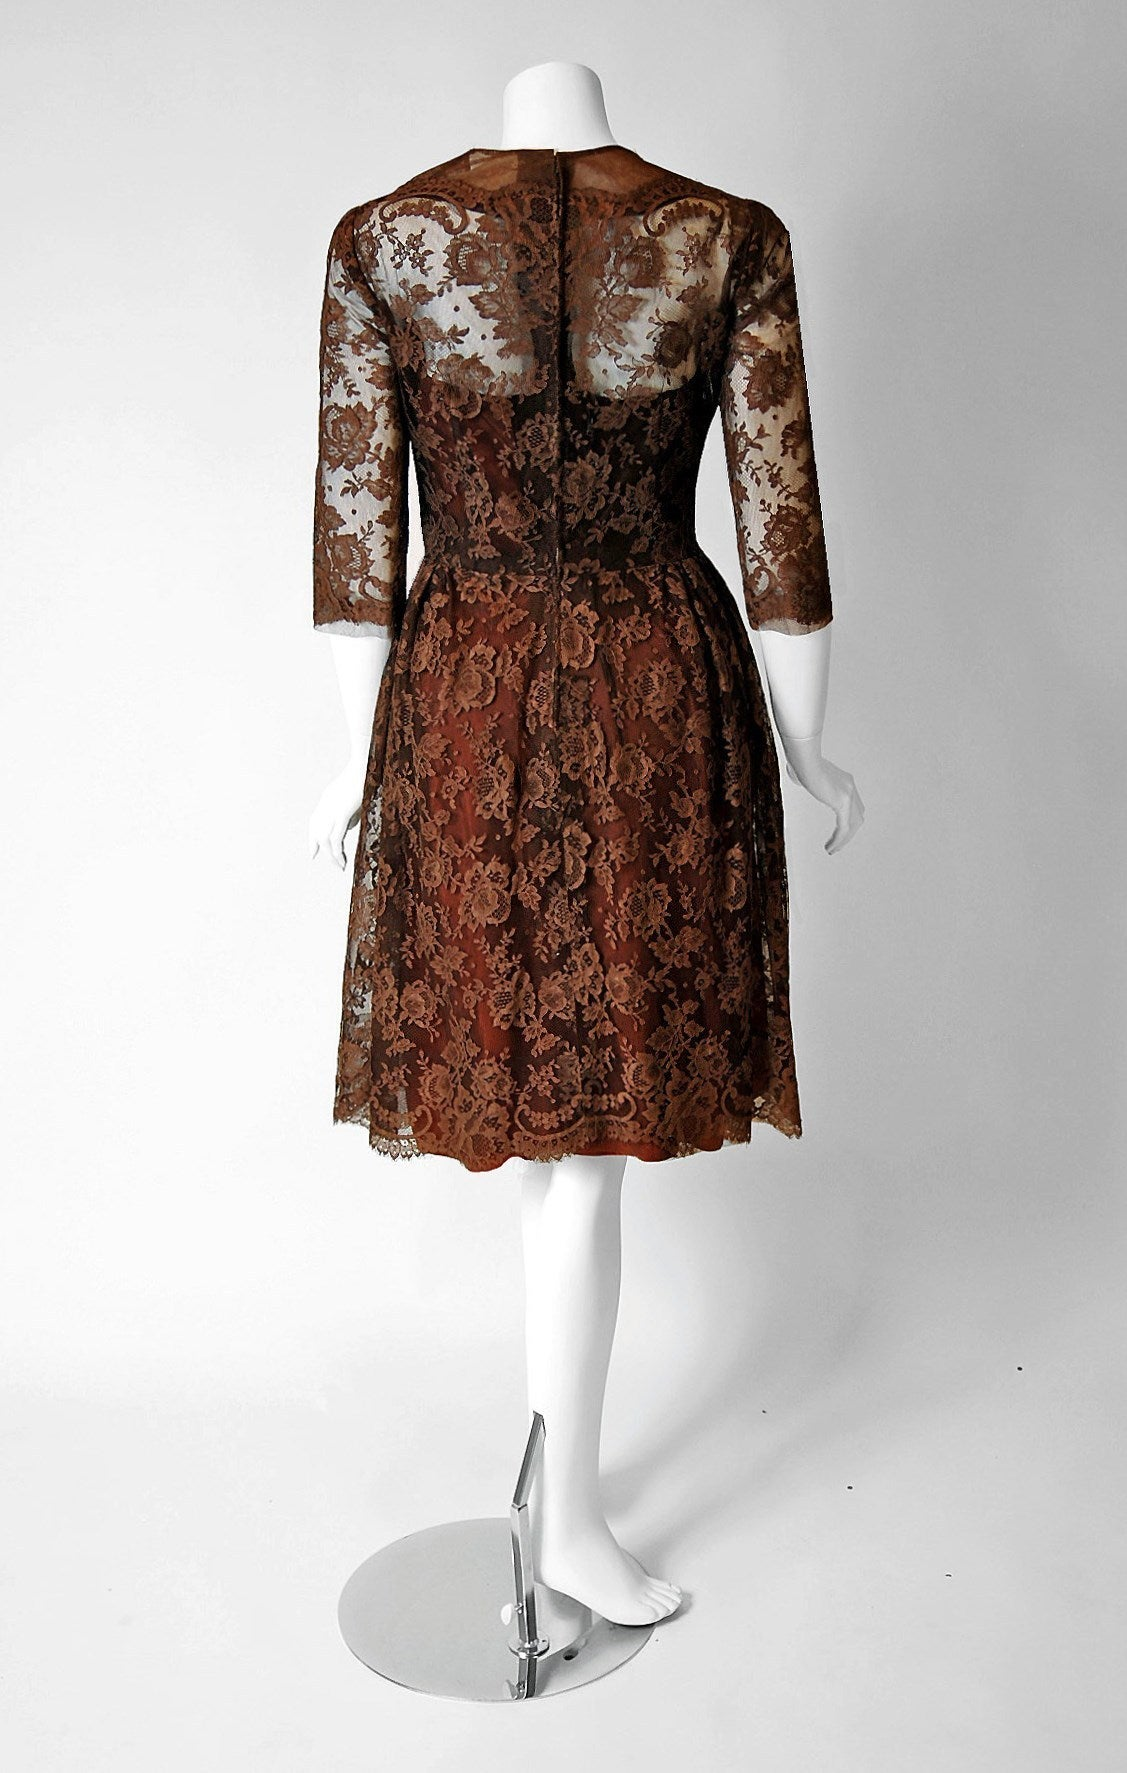 1955 Maggy Rouff Haute-Couture Brown Sheer Illusion Chantilly-Lace Party Dress In Excellent Condition For Sale In Beverly Hills, CA